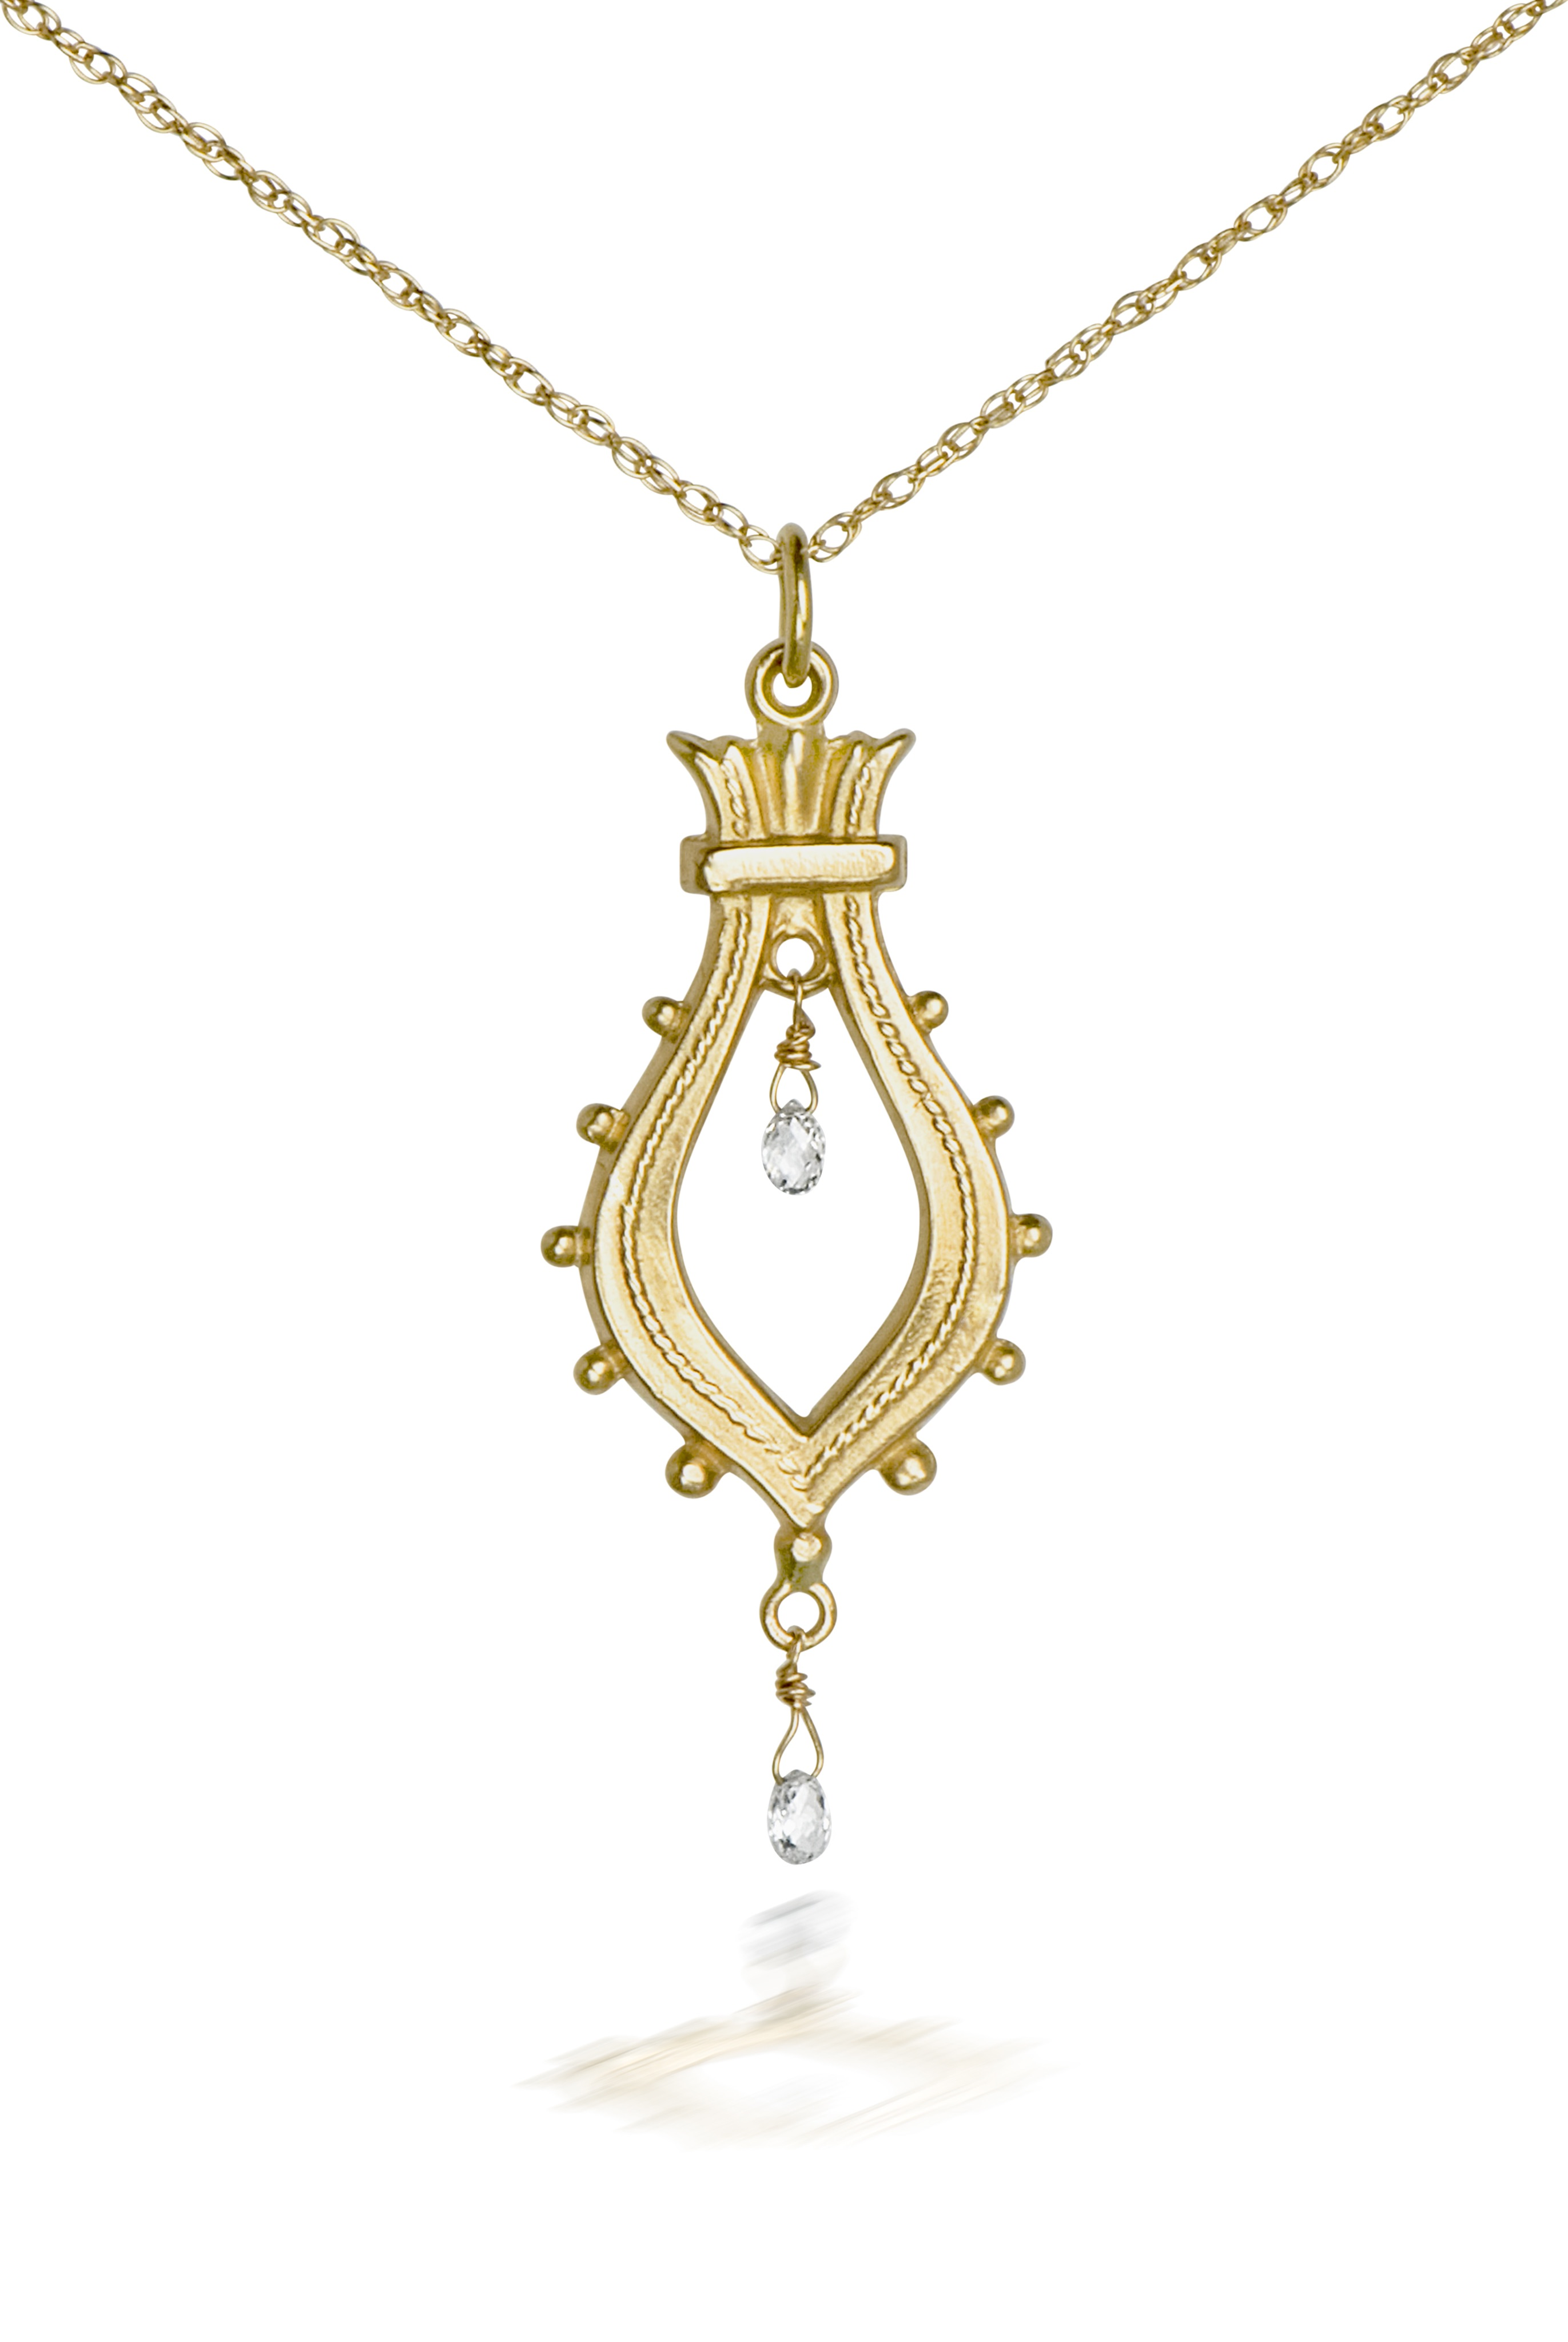 The Jewel - Just Jules - Lookbook - Gold Drop Necklace